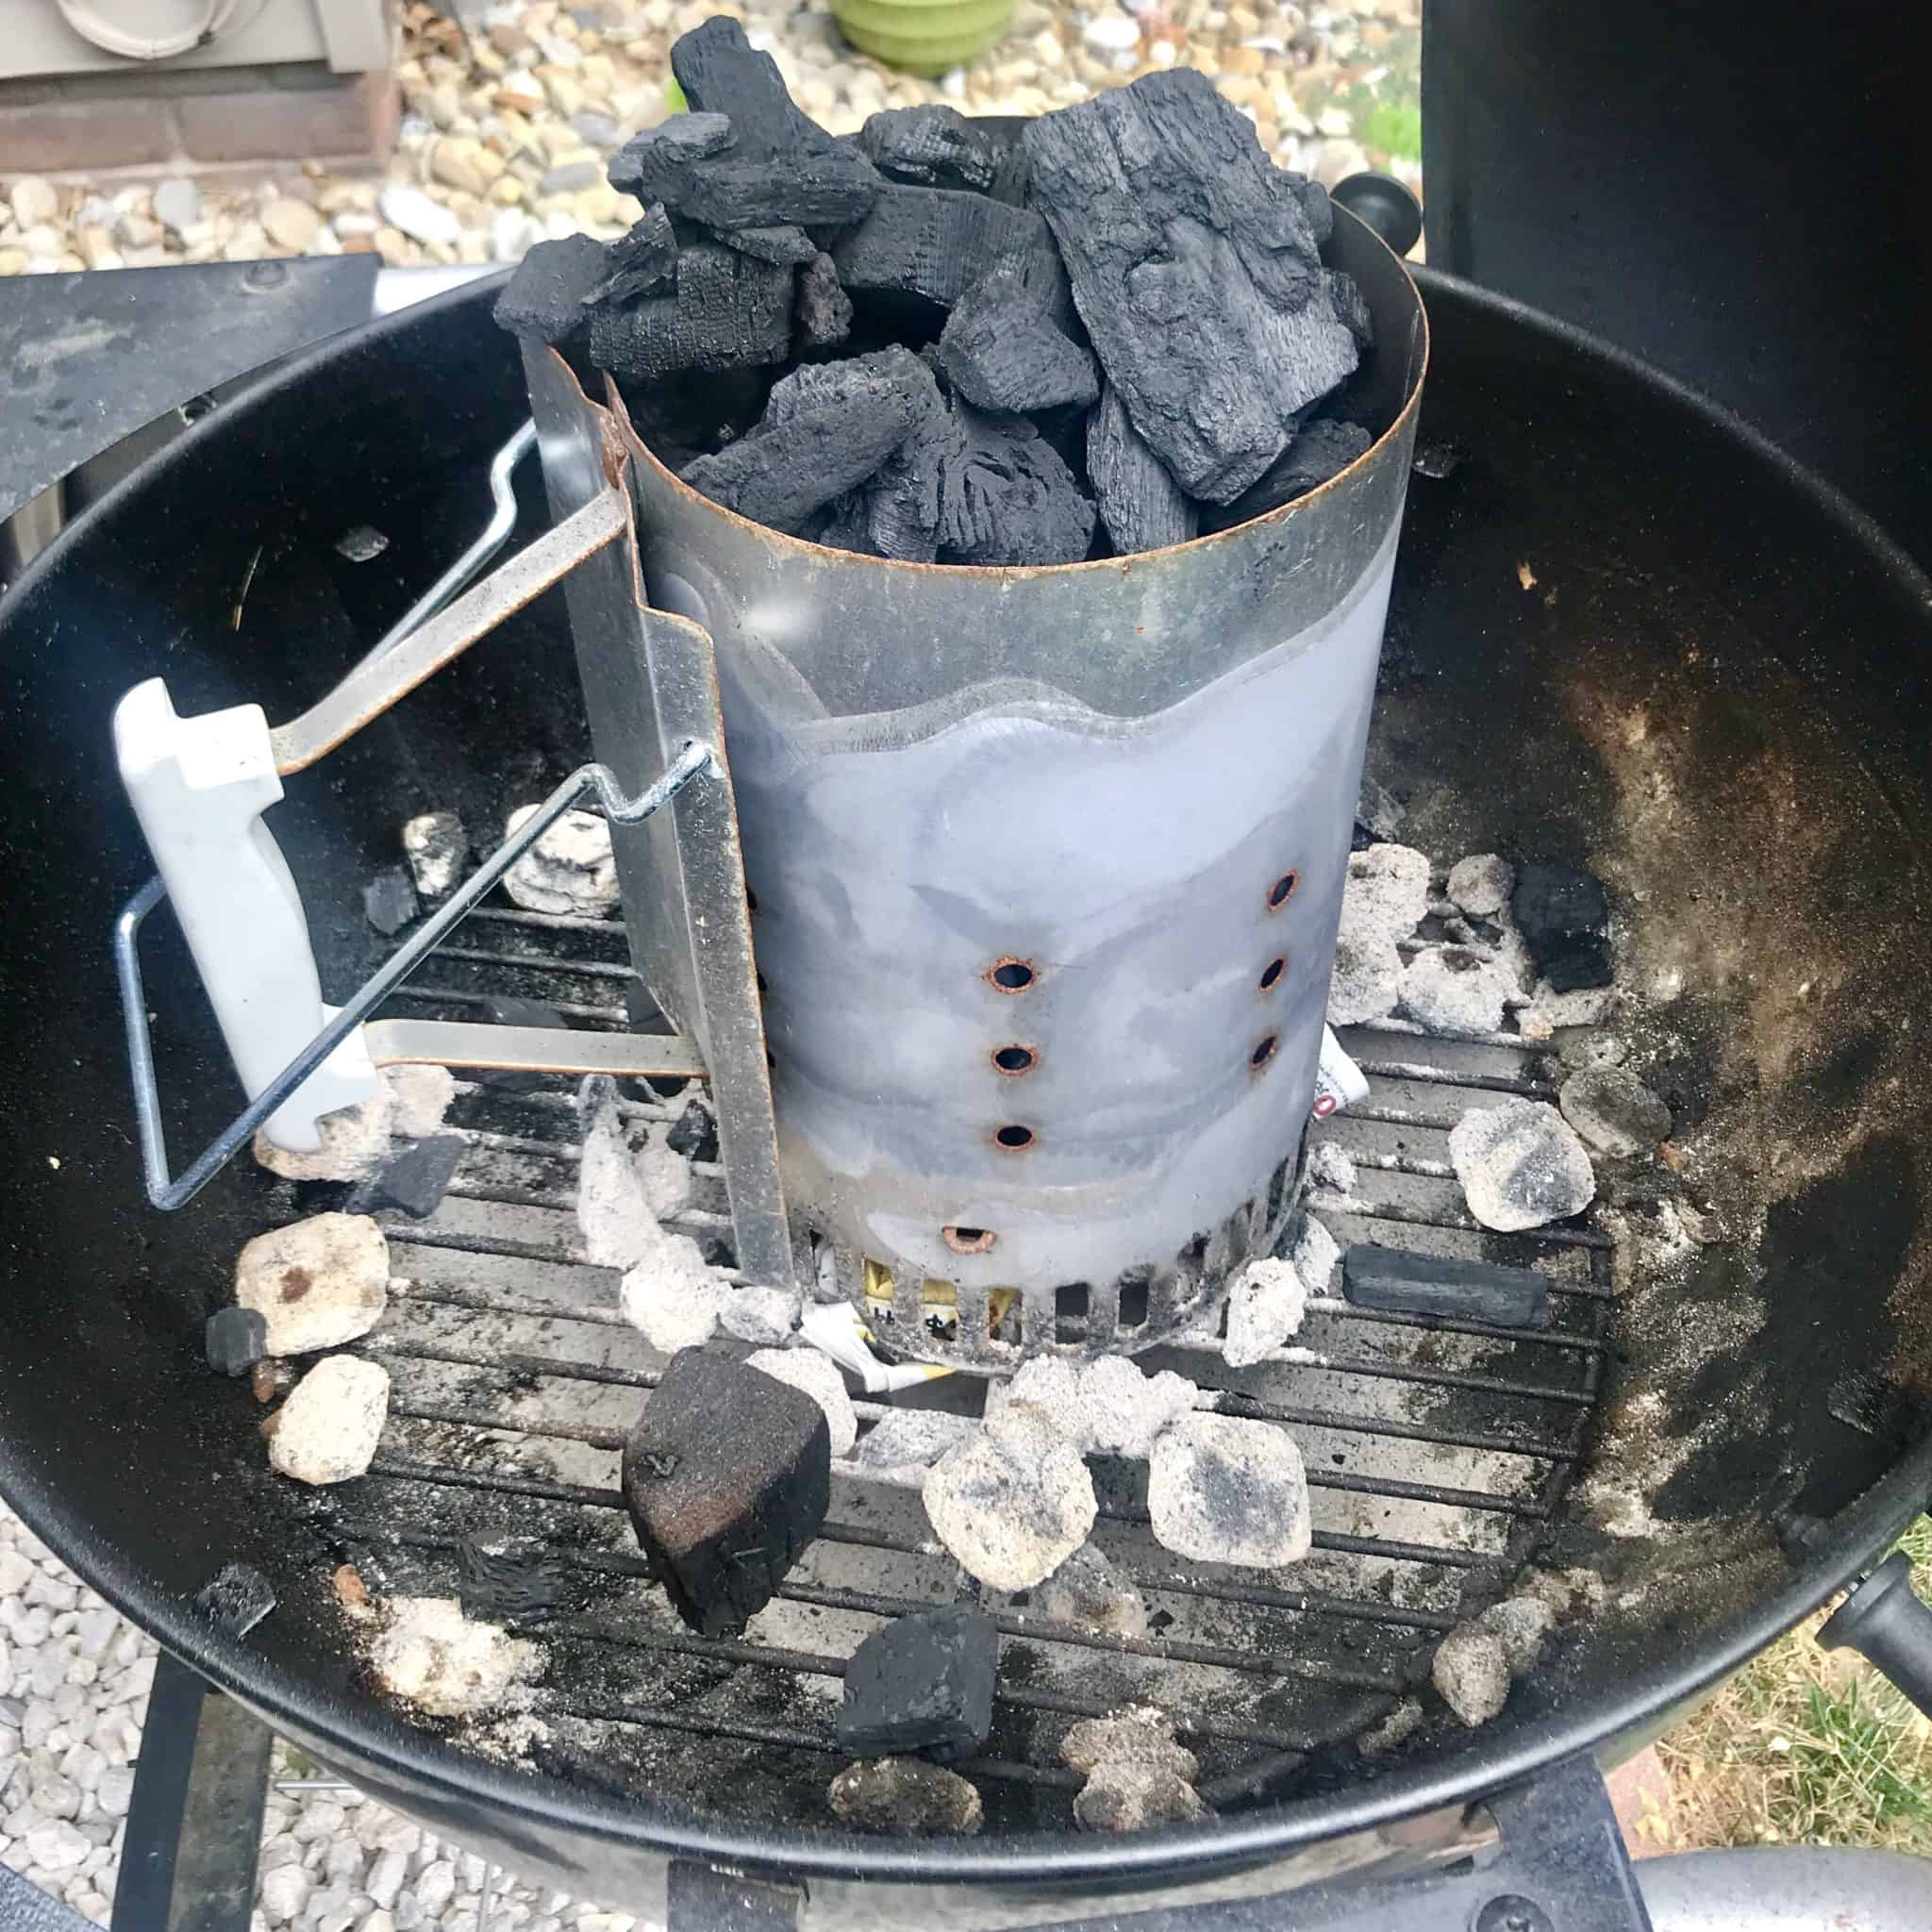 Charcoal chimney on weber grill